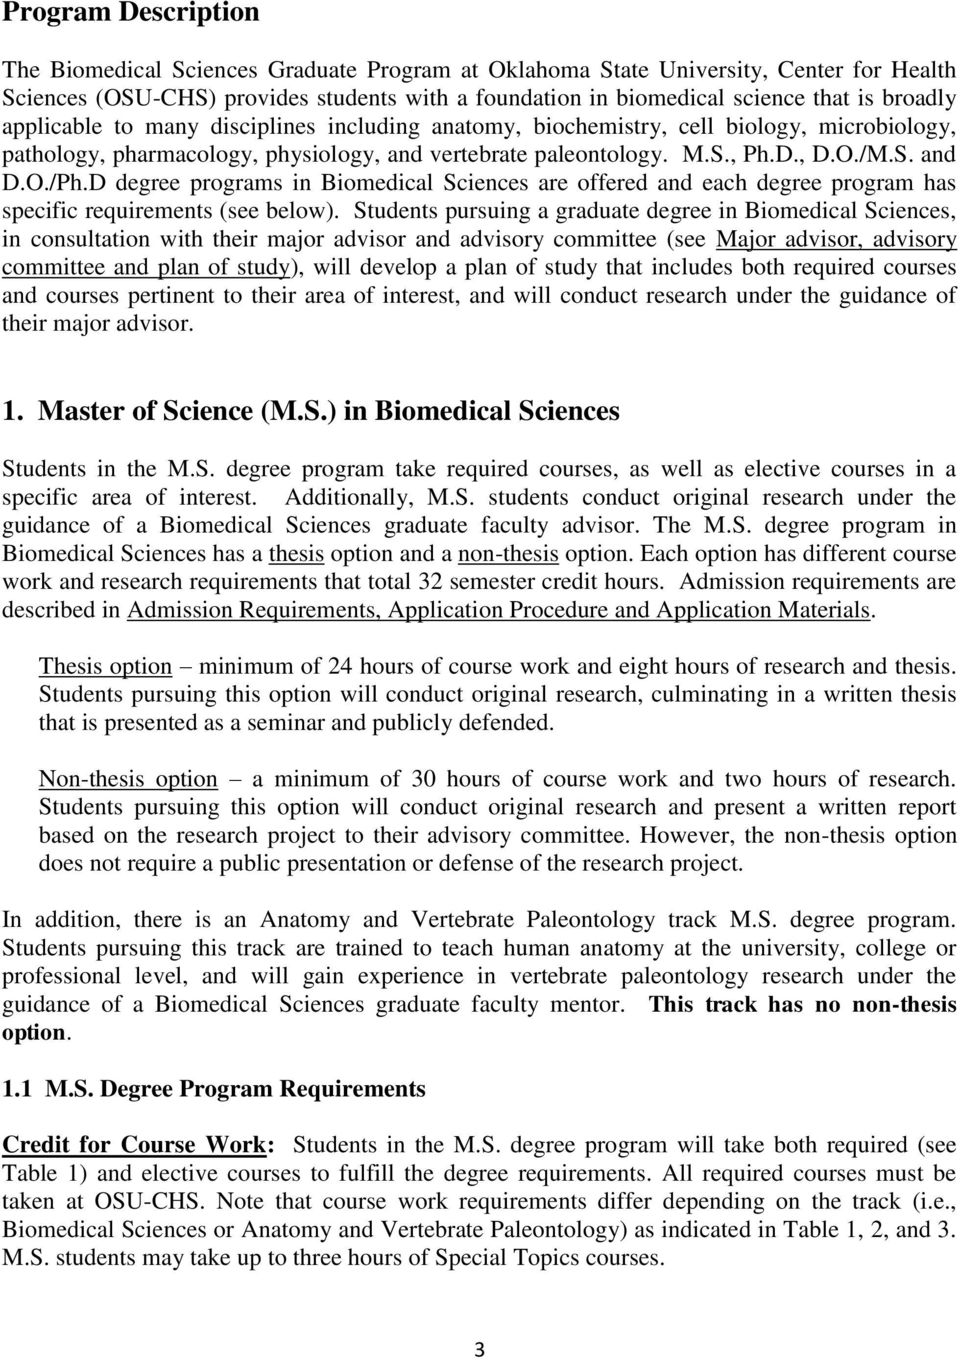 D degree programs in Biomedical Sciences are offered and each degree program has specific requirements (see below).